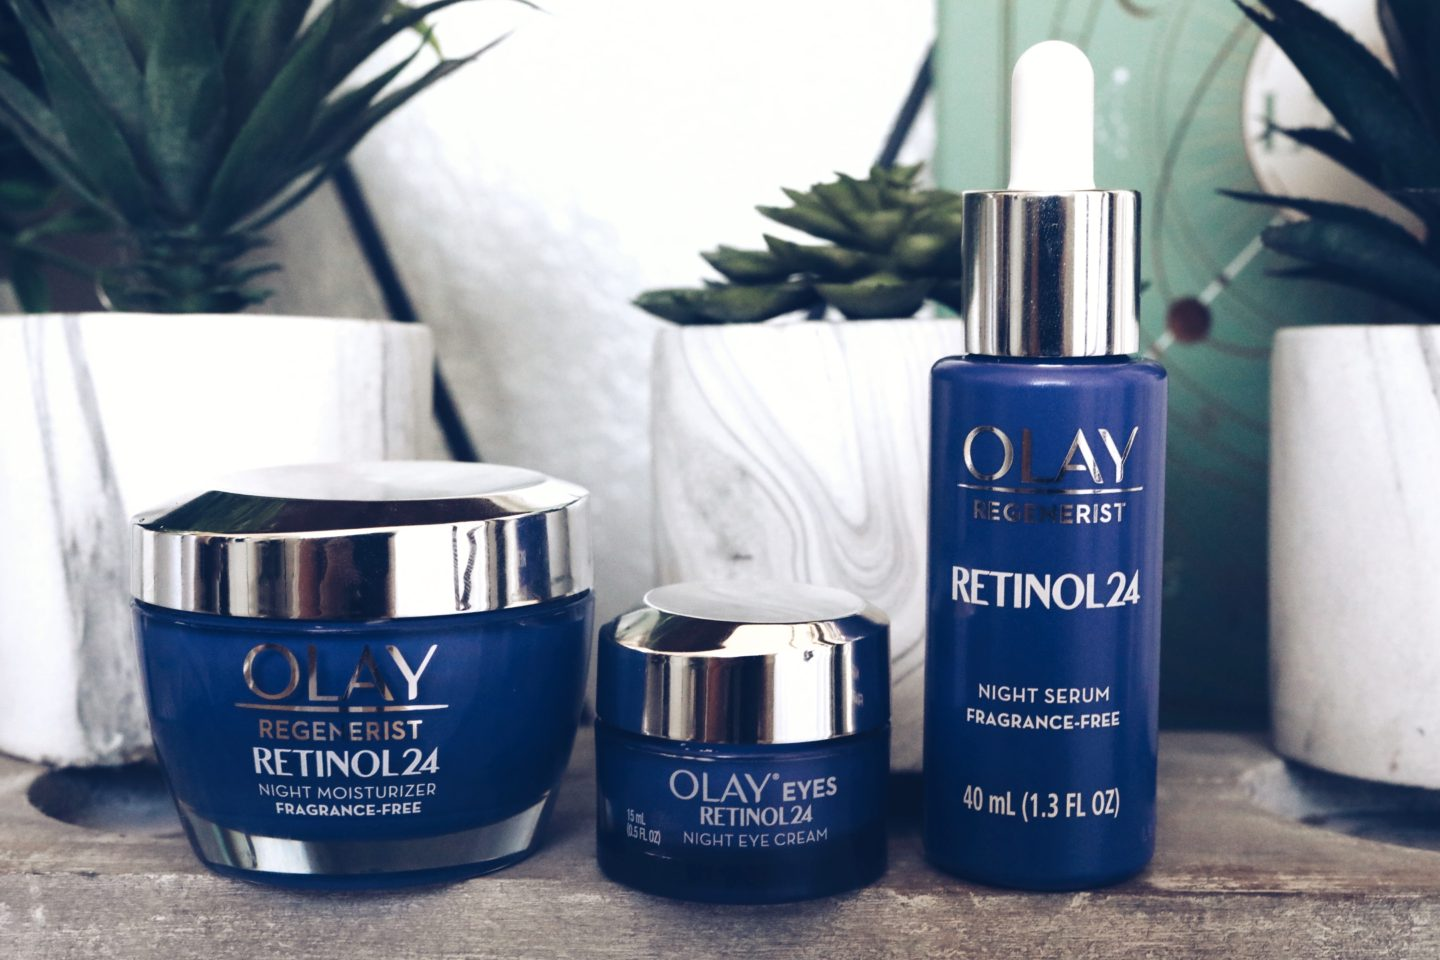 My Olay Retinol 24 Experience Hunt For Styles